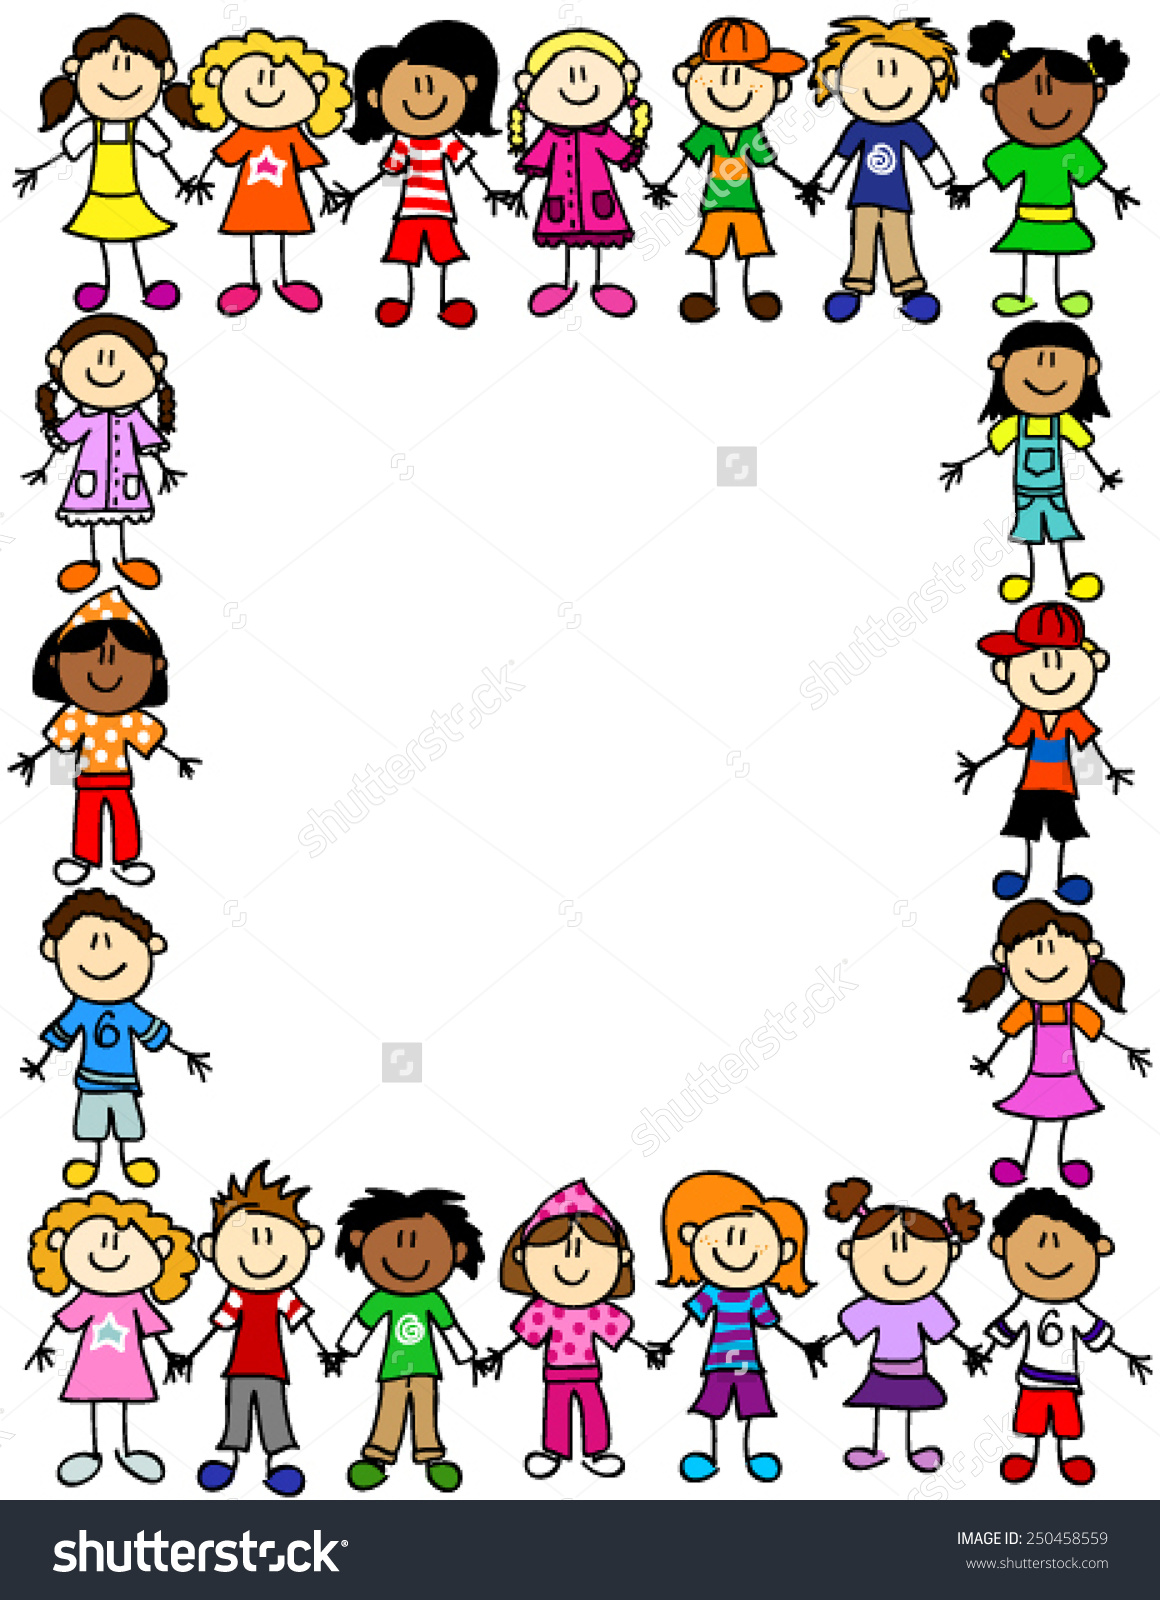 People clipart border picture free library Frame Page Border Cute Kid Cartoon Stock Vector 250458559 ... picture free library